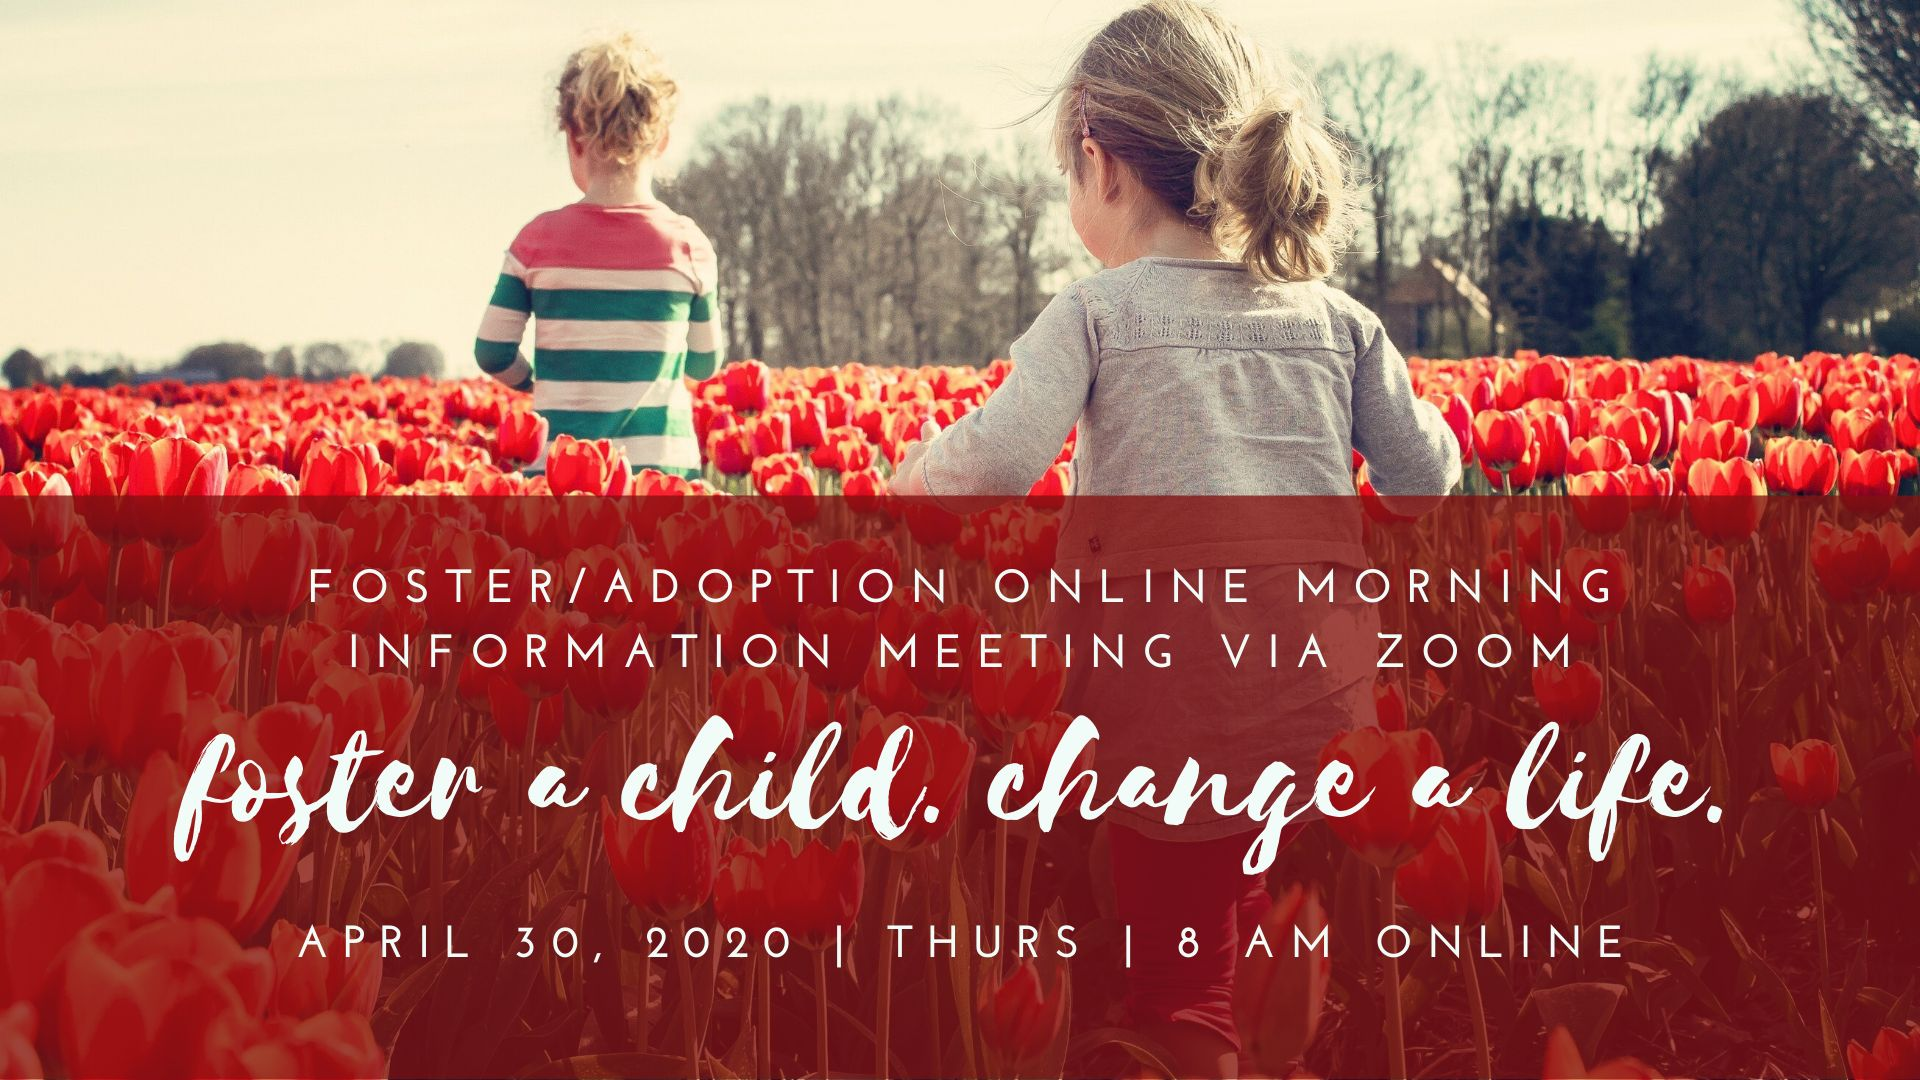 Foster/Adoption Information Meeting 4-30-20